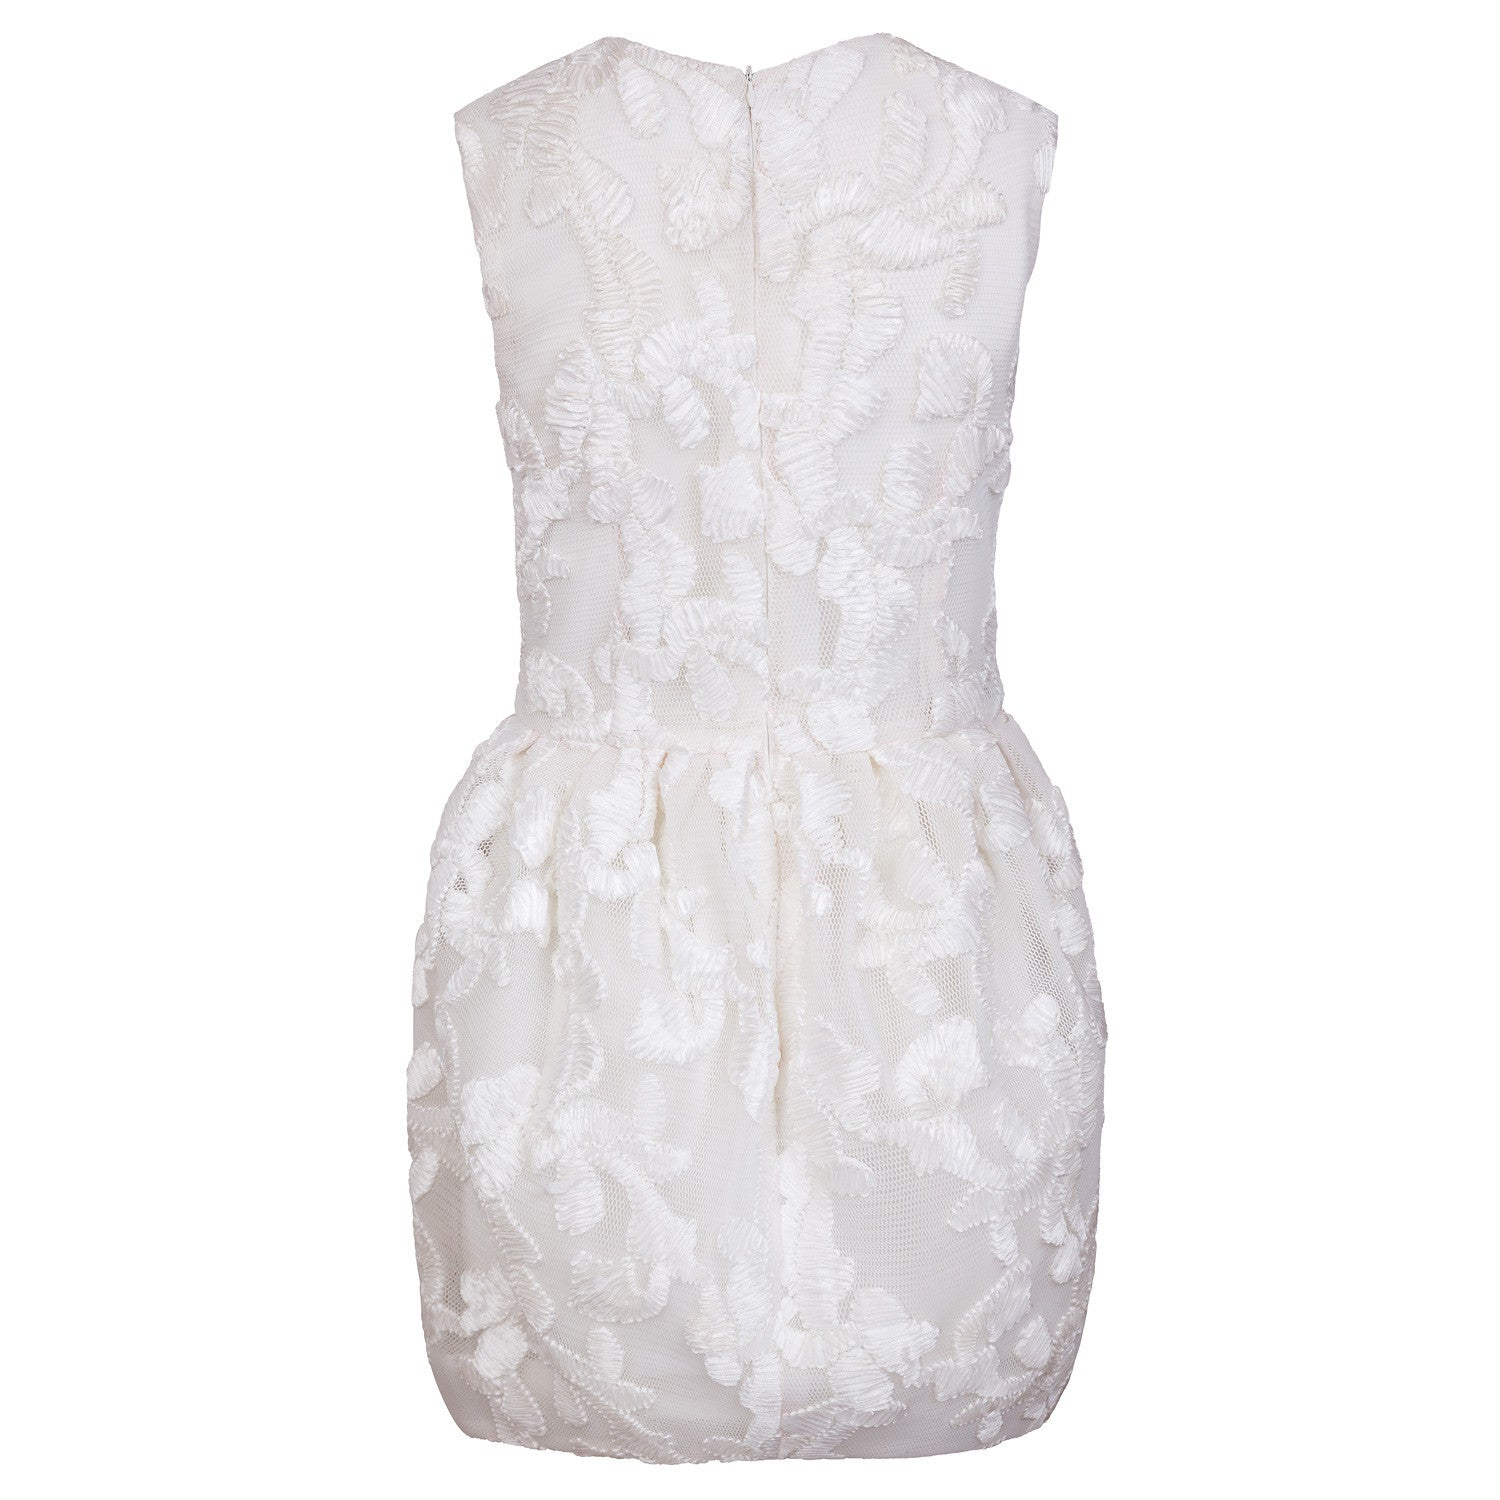 [Limit Edtion] White floral embroidery dress